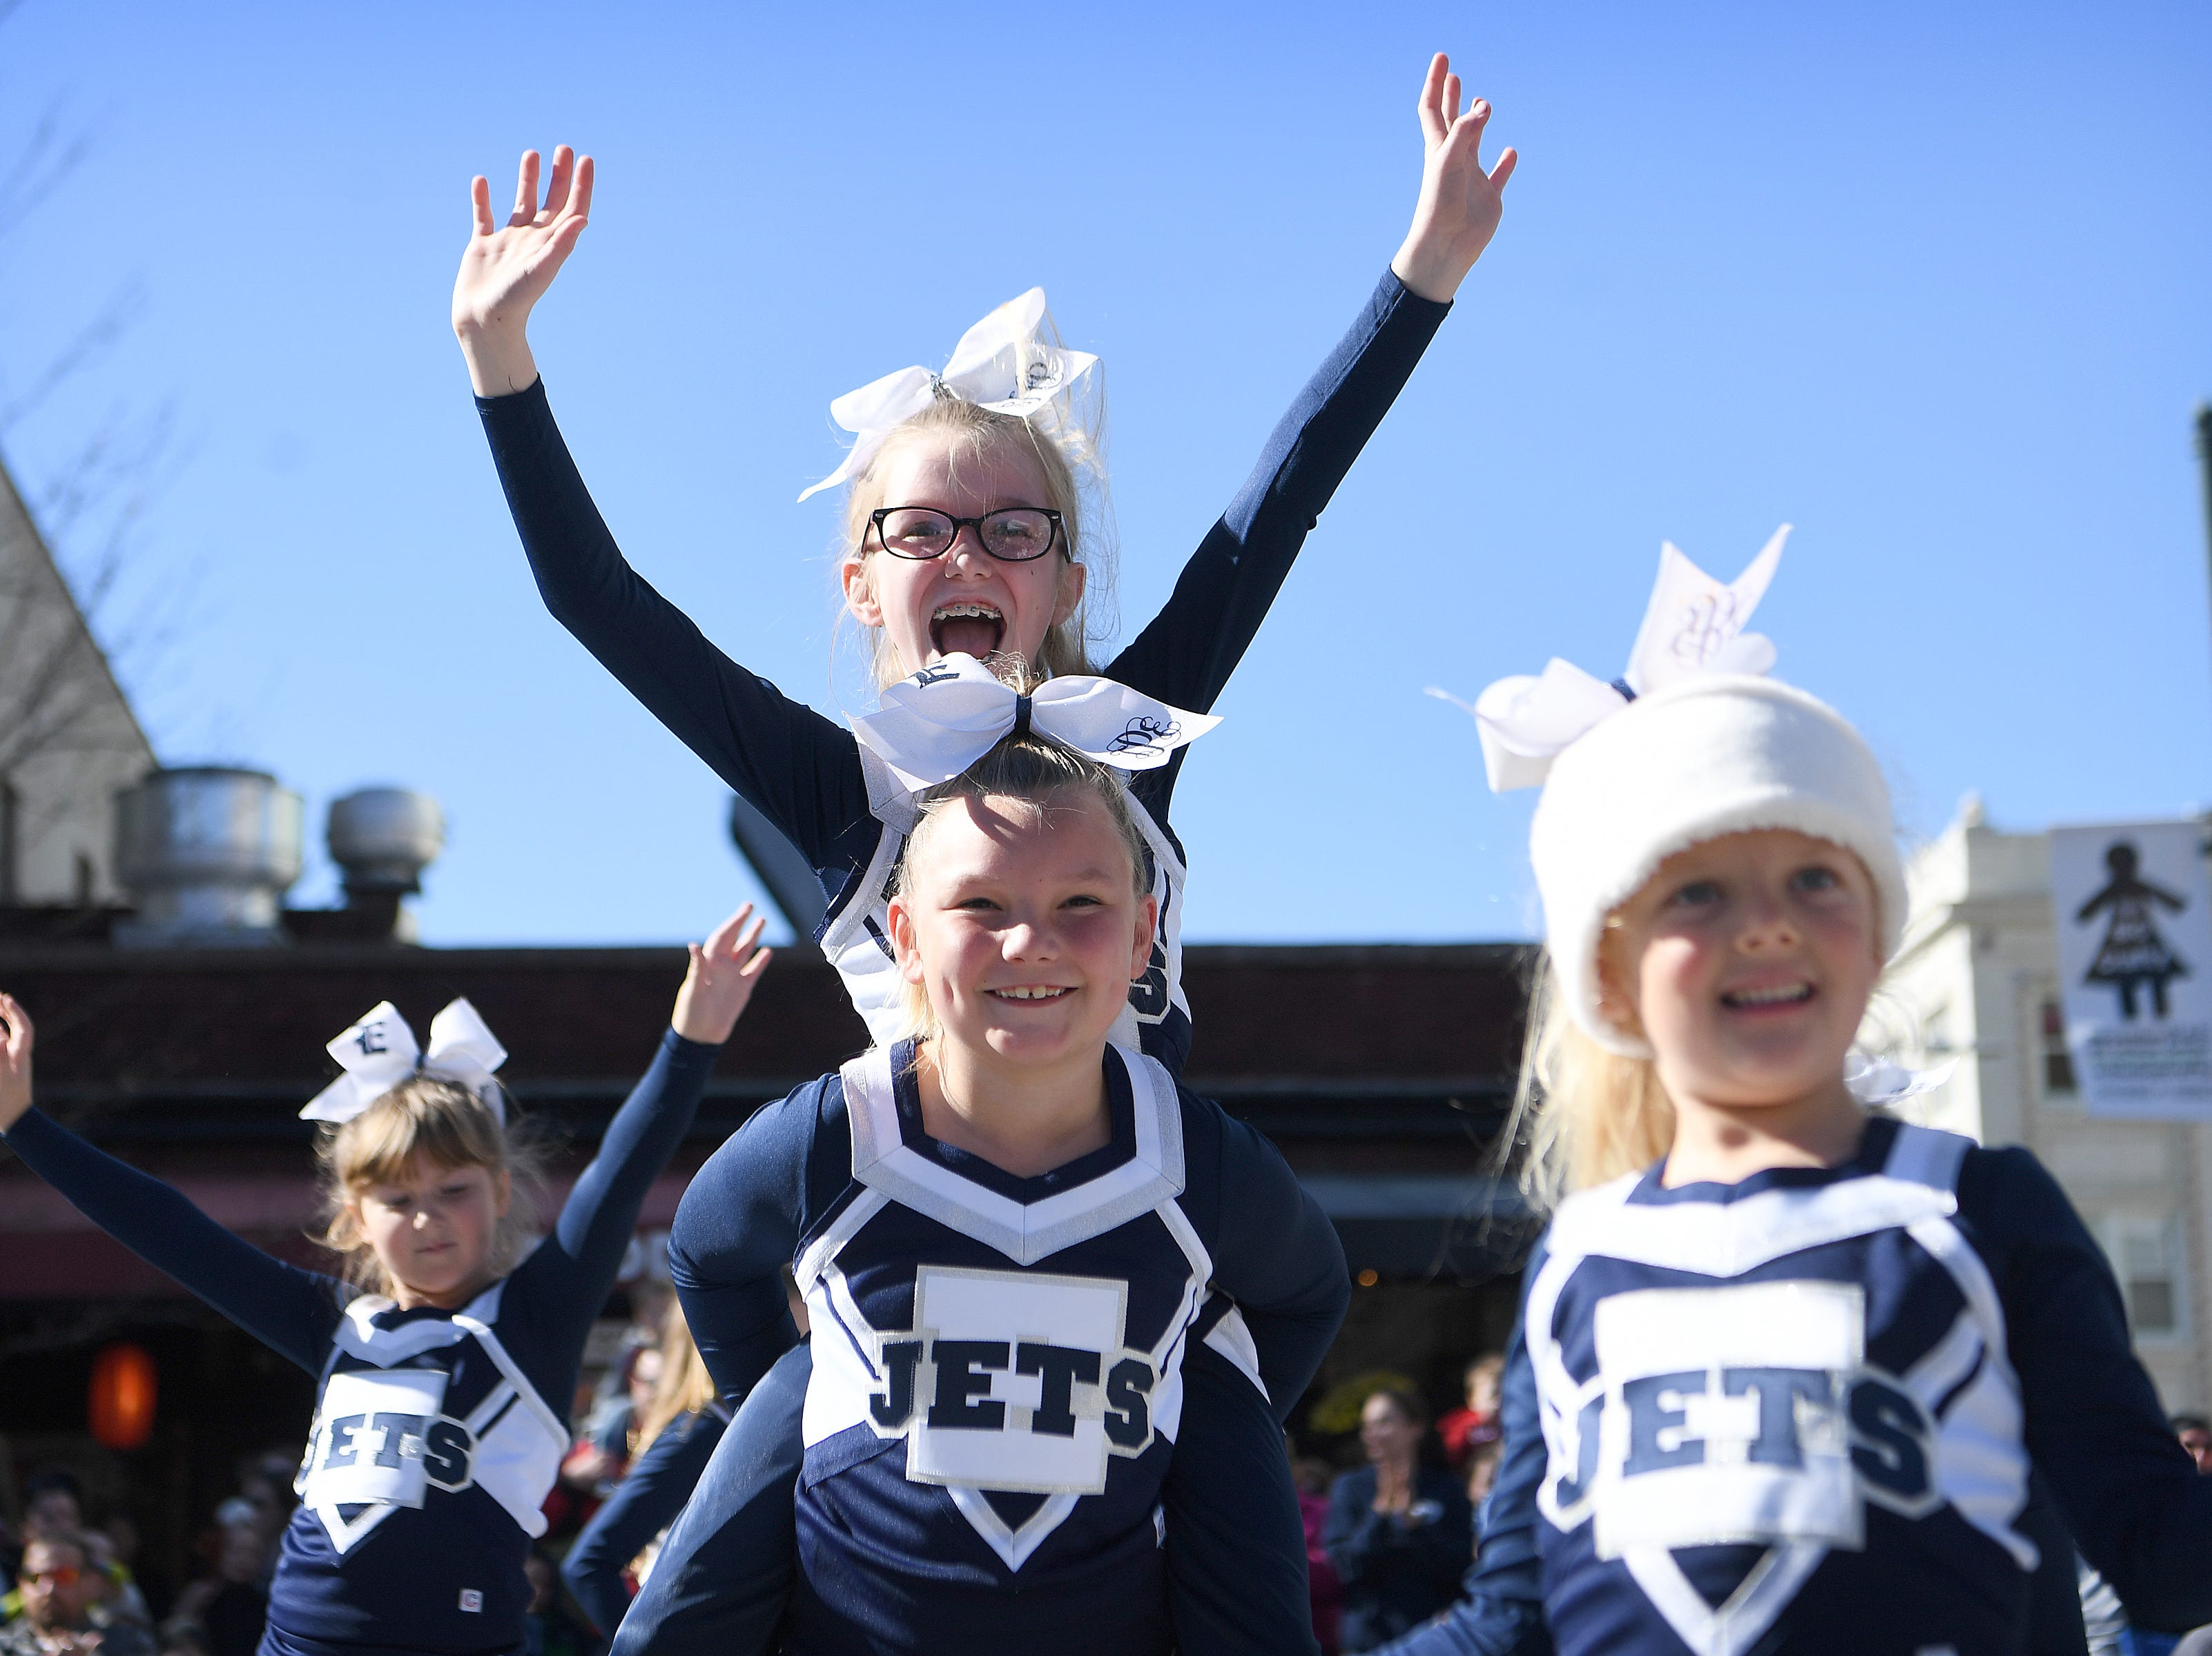 Hominy Valley Youth Cheerleaders strike an ending pose after performing for the judges at the corner of Biltmore and Patton Avenues during the 2018 Asheville Holiday Parade on Nov. 17, 2018. More than 100 entries walked through the streets lined with spectators in the parade this year.